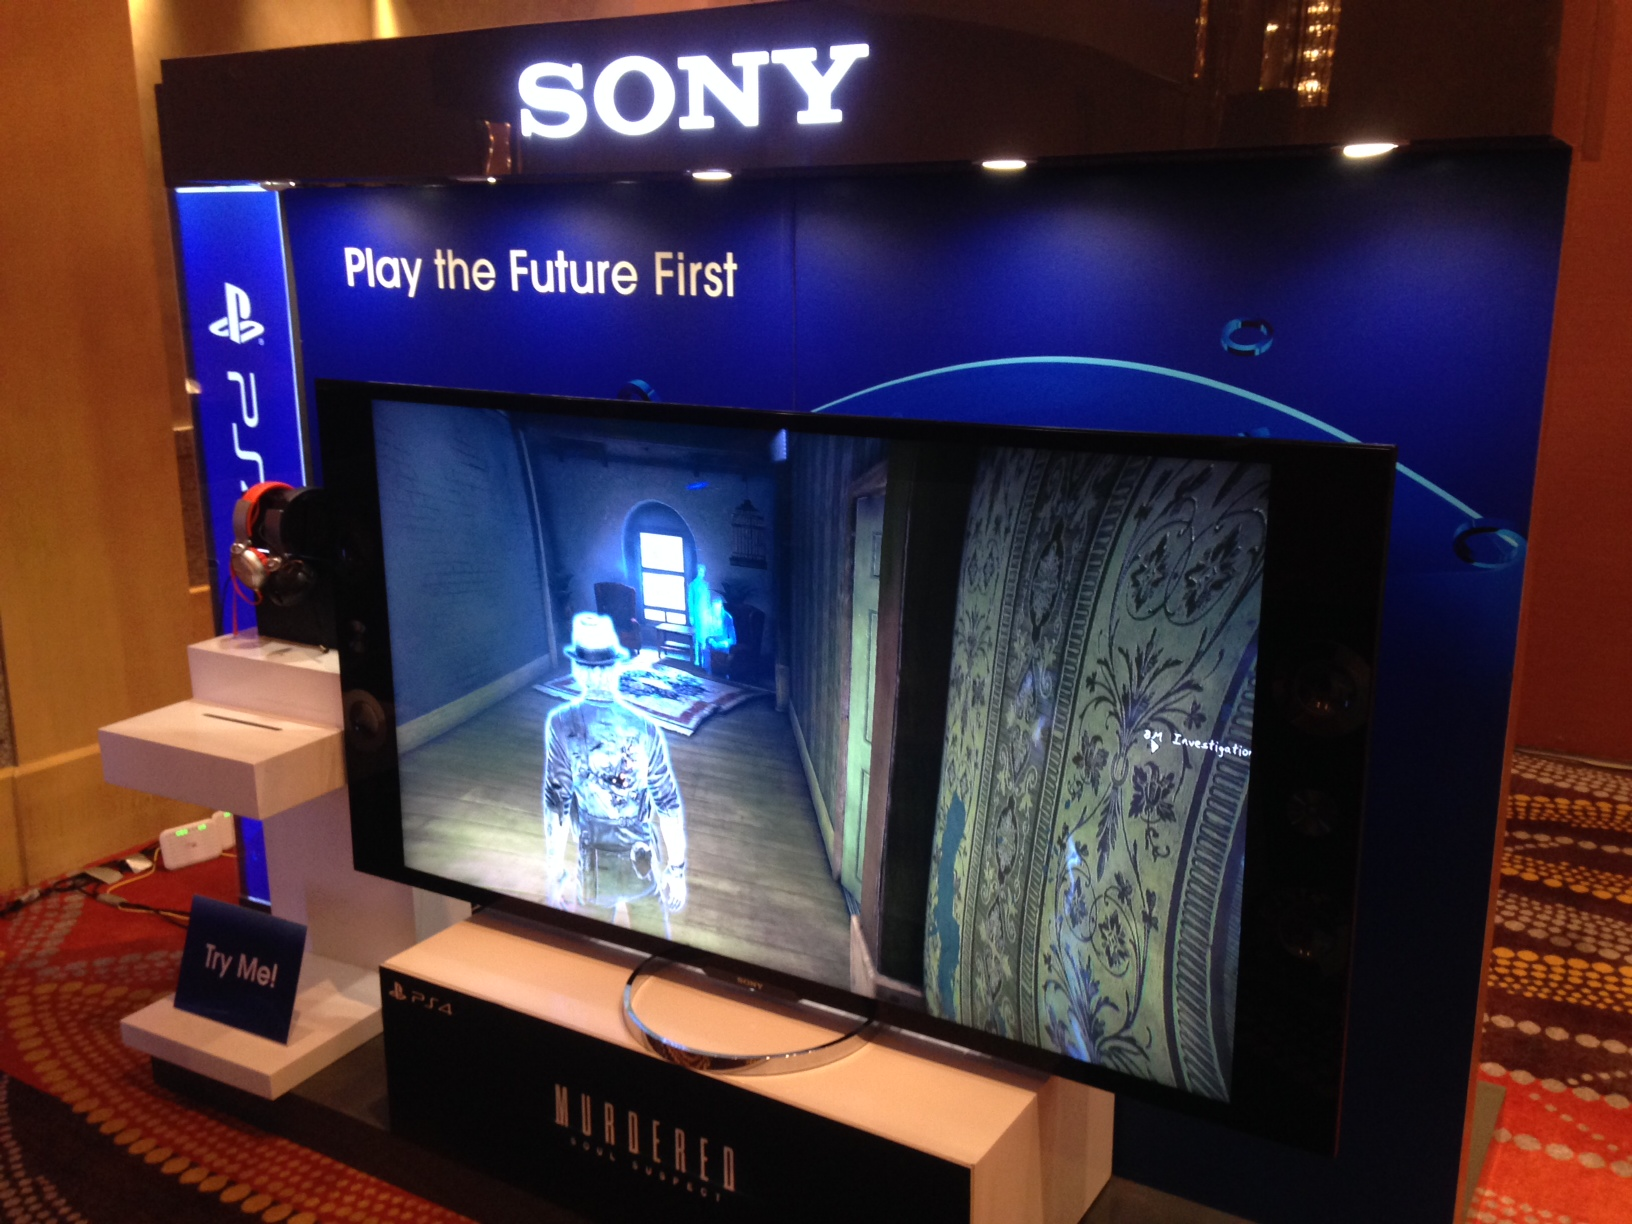 Sony introduces new PlayStation 4 games and System Software